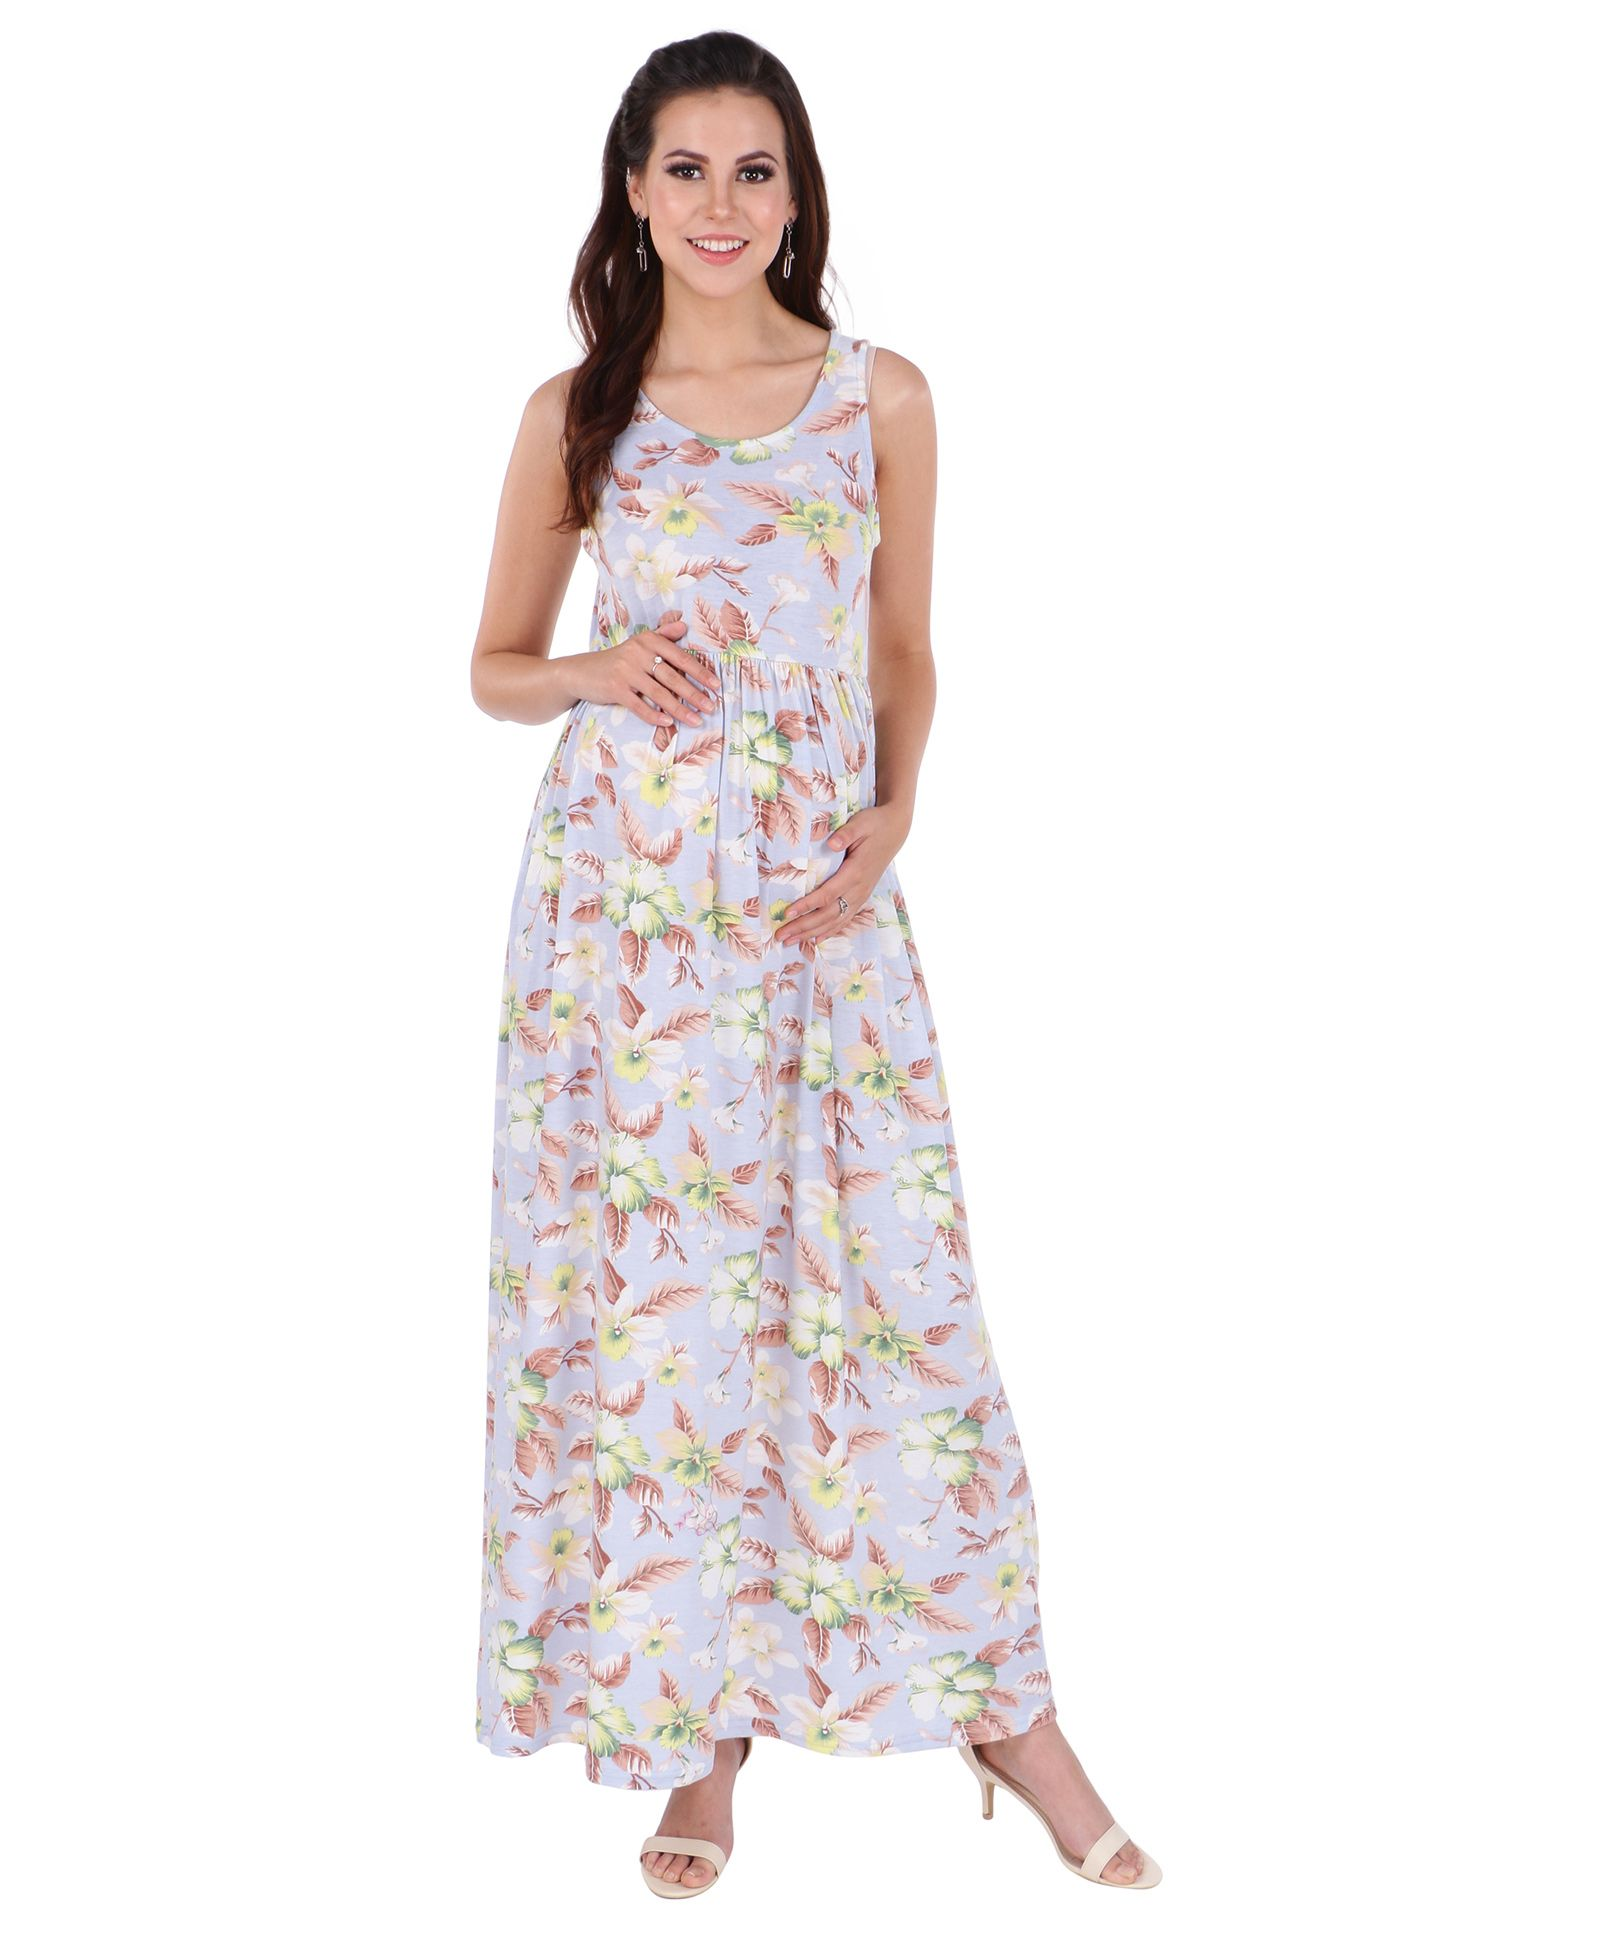 8e39ac135f730 MomToBe Sleeveless Maternity Dress Flower & Leaf Print Blue Online in  India, Buy at Best Price from Firstcry.com - 2358955